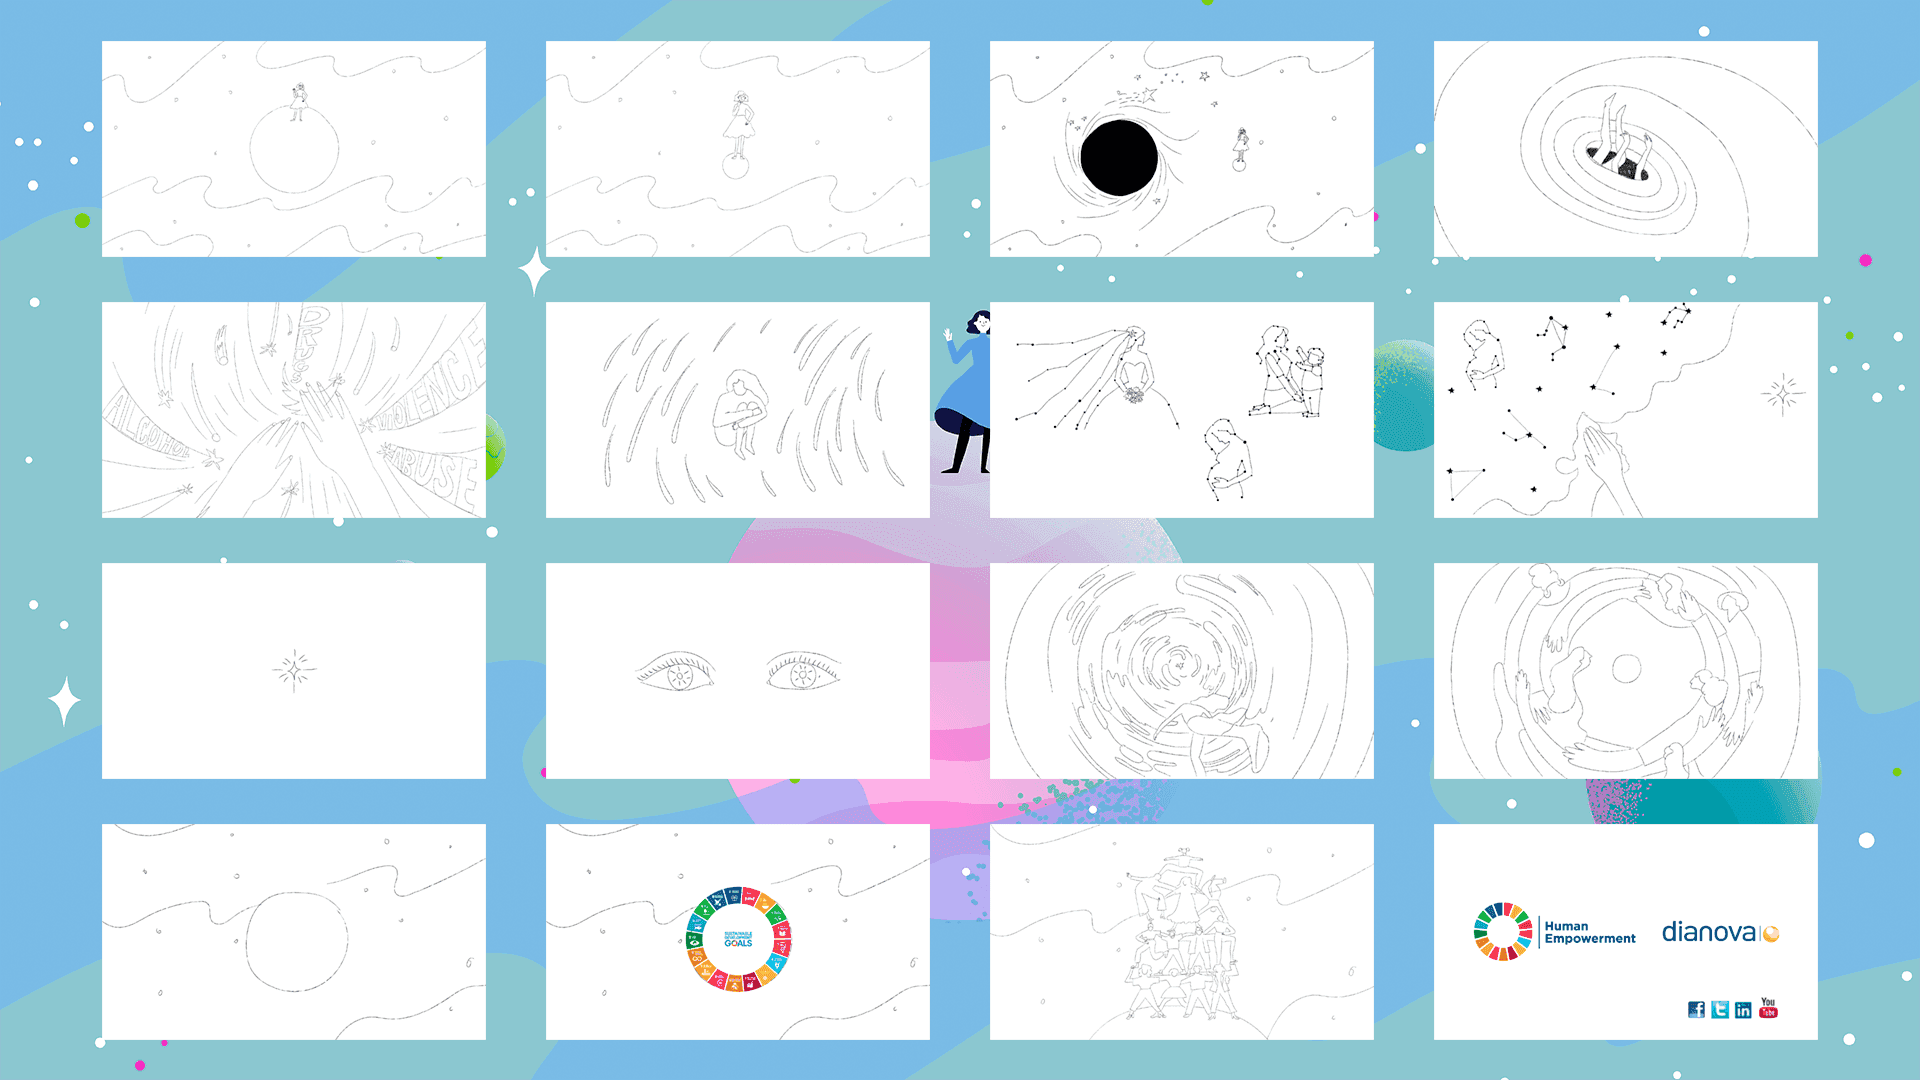 """Storyboard for """"Human Empowerment Animated Video"""""""